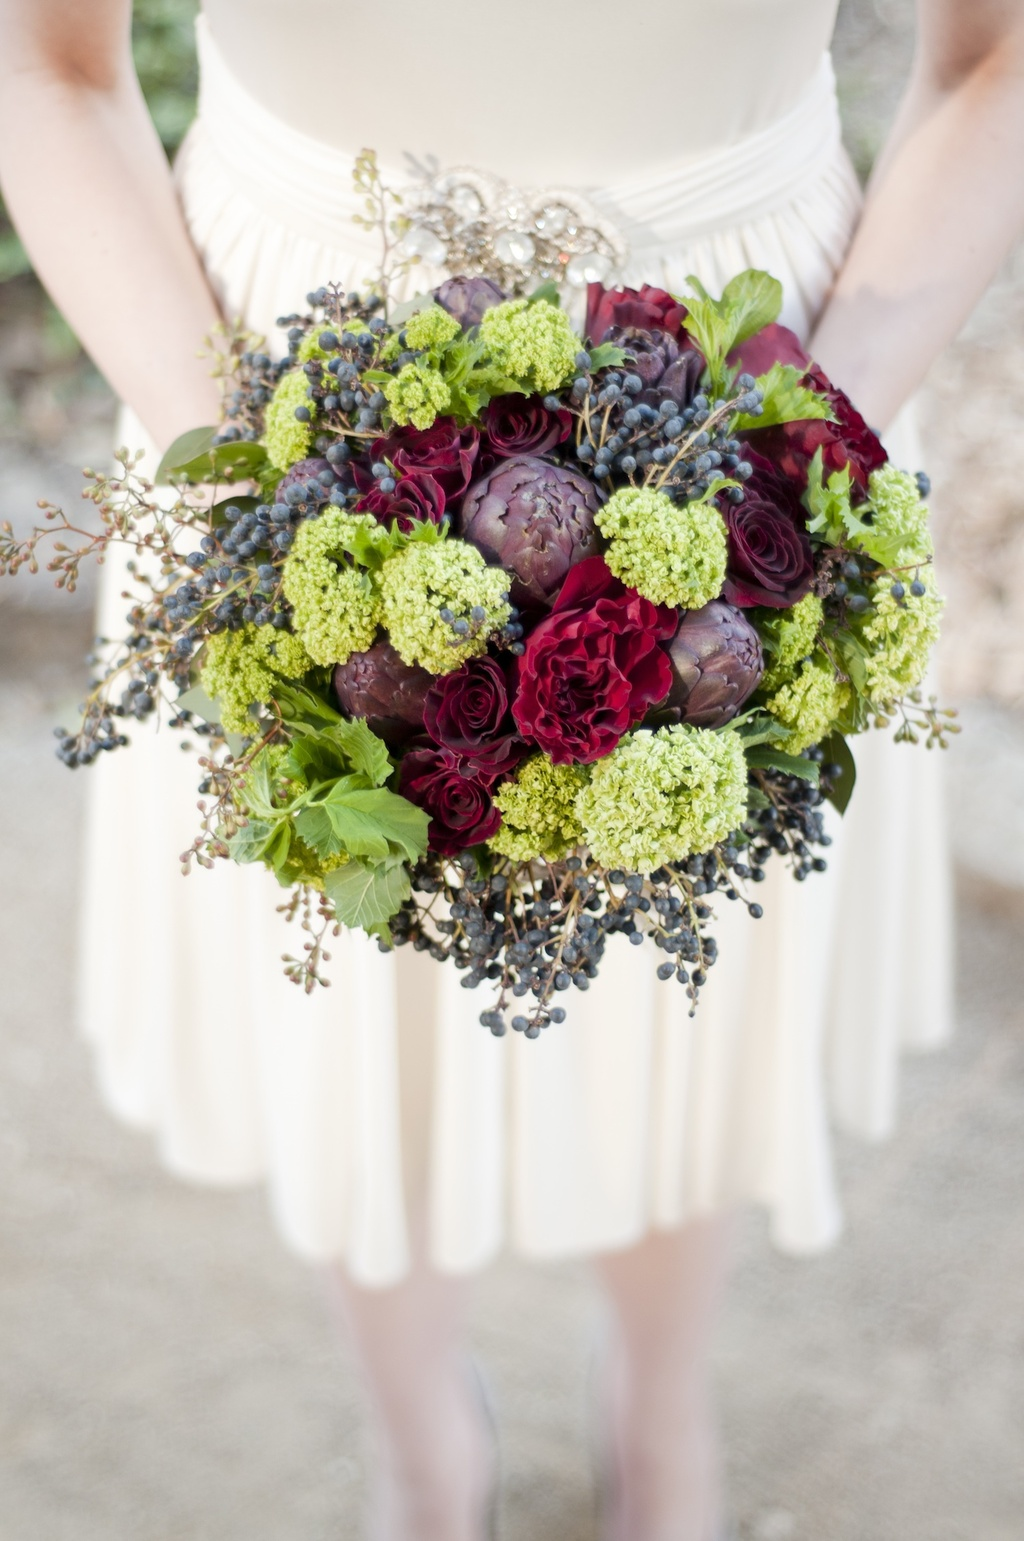 Parisian-themed-wedding-inspiration-romantic-fall-bridal-bouquet.full